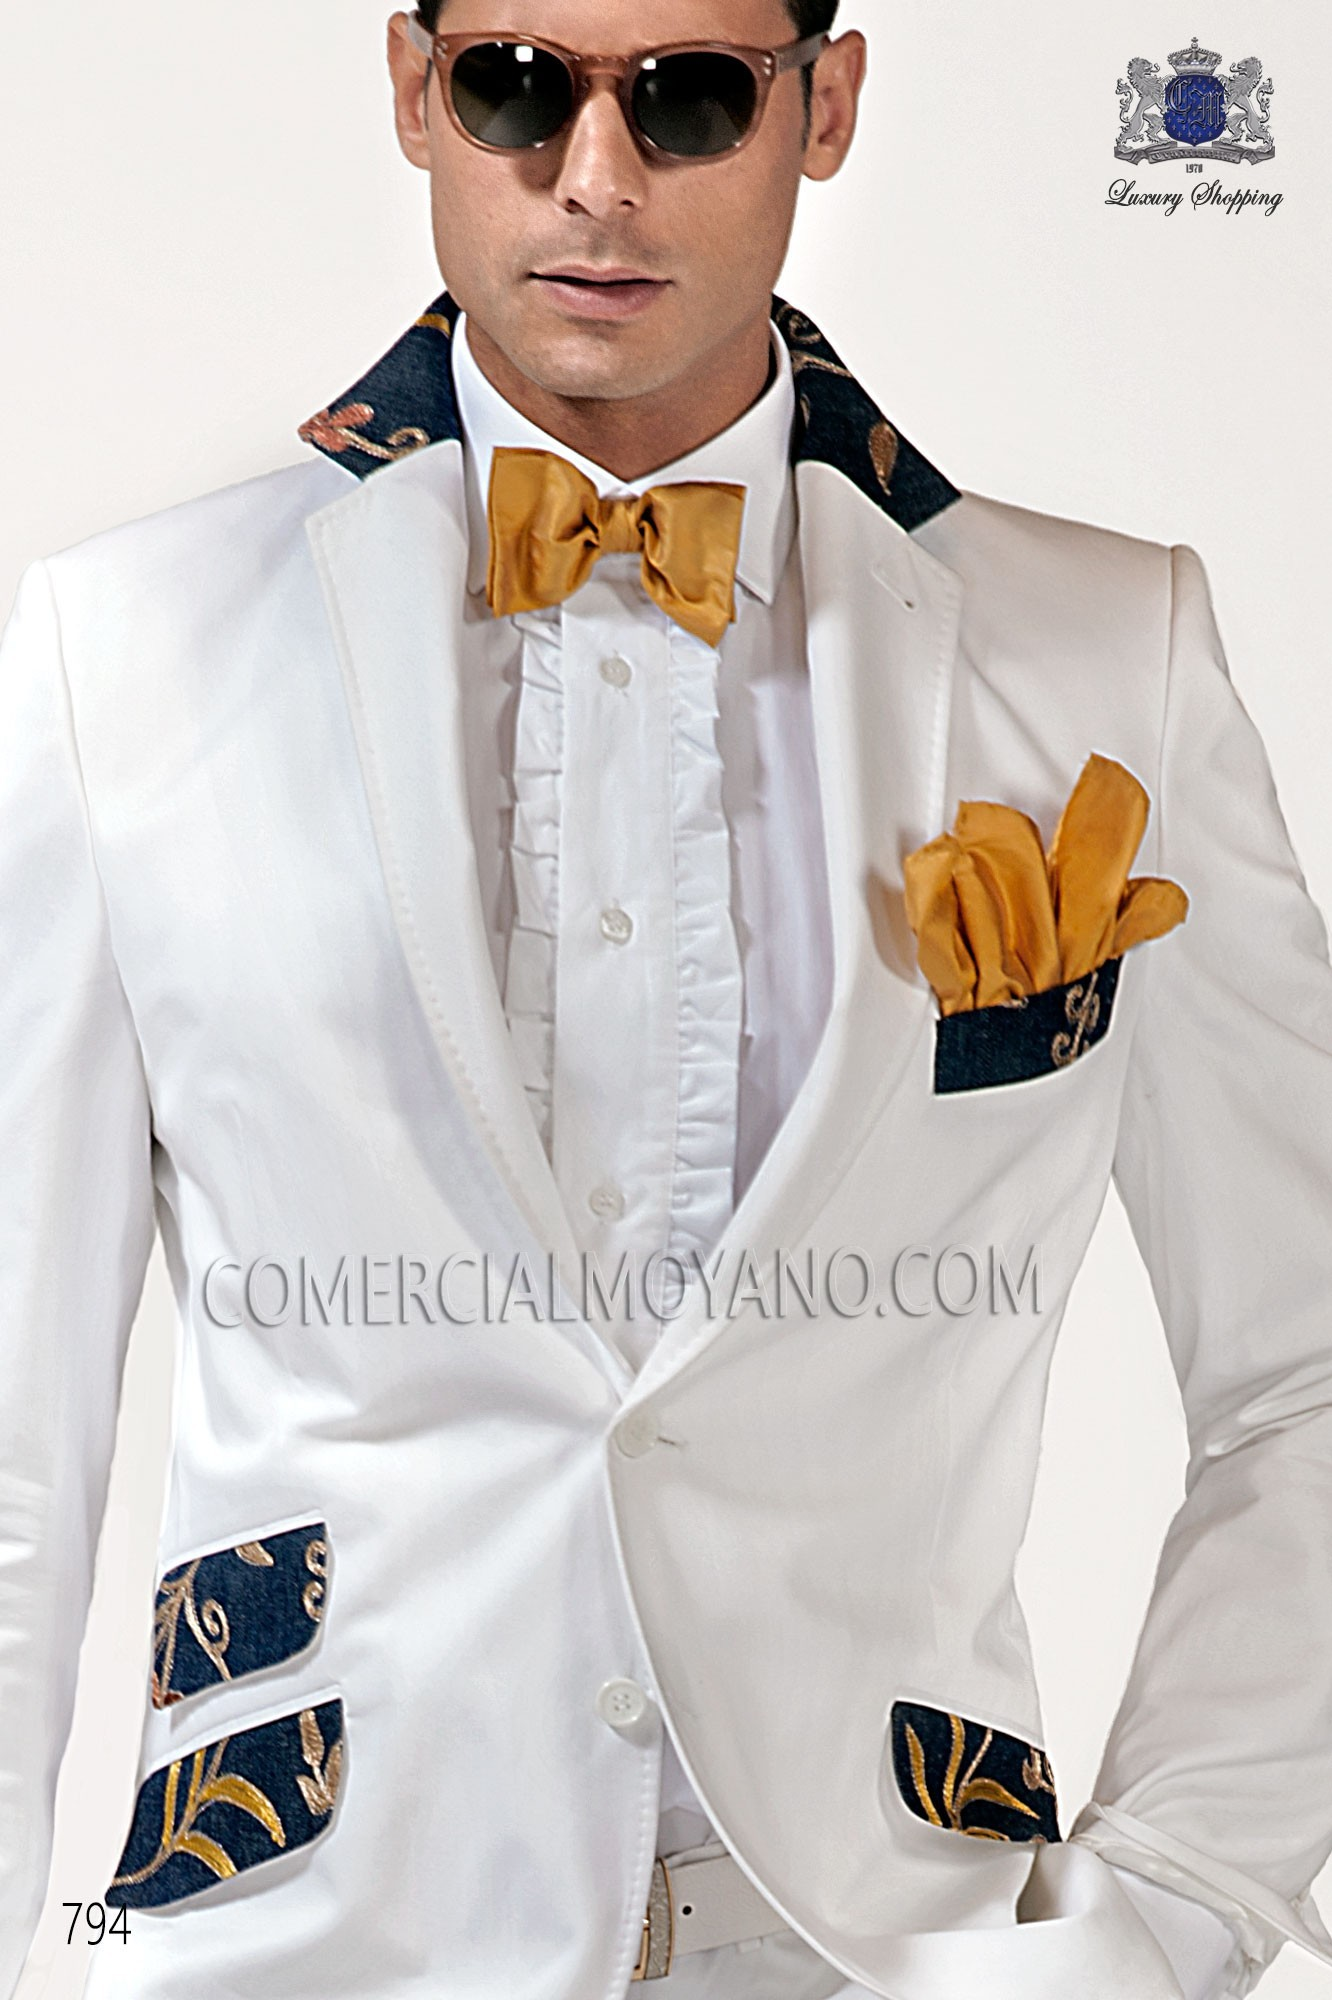 Hipster white men wedding suit, model: 794 Ottavio Nuccio Gala ...